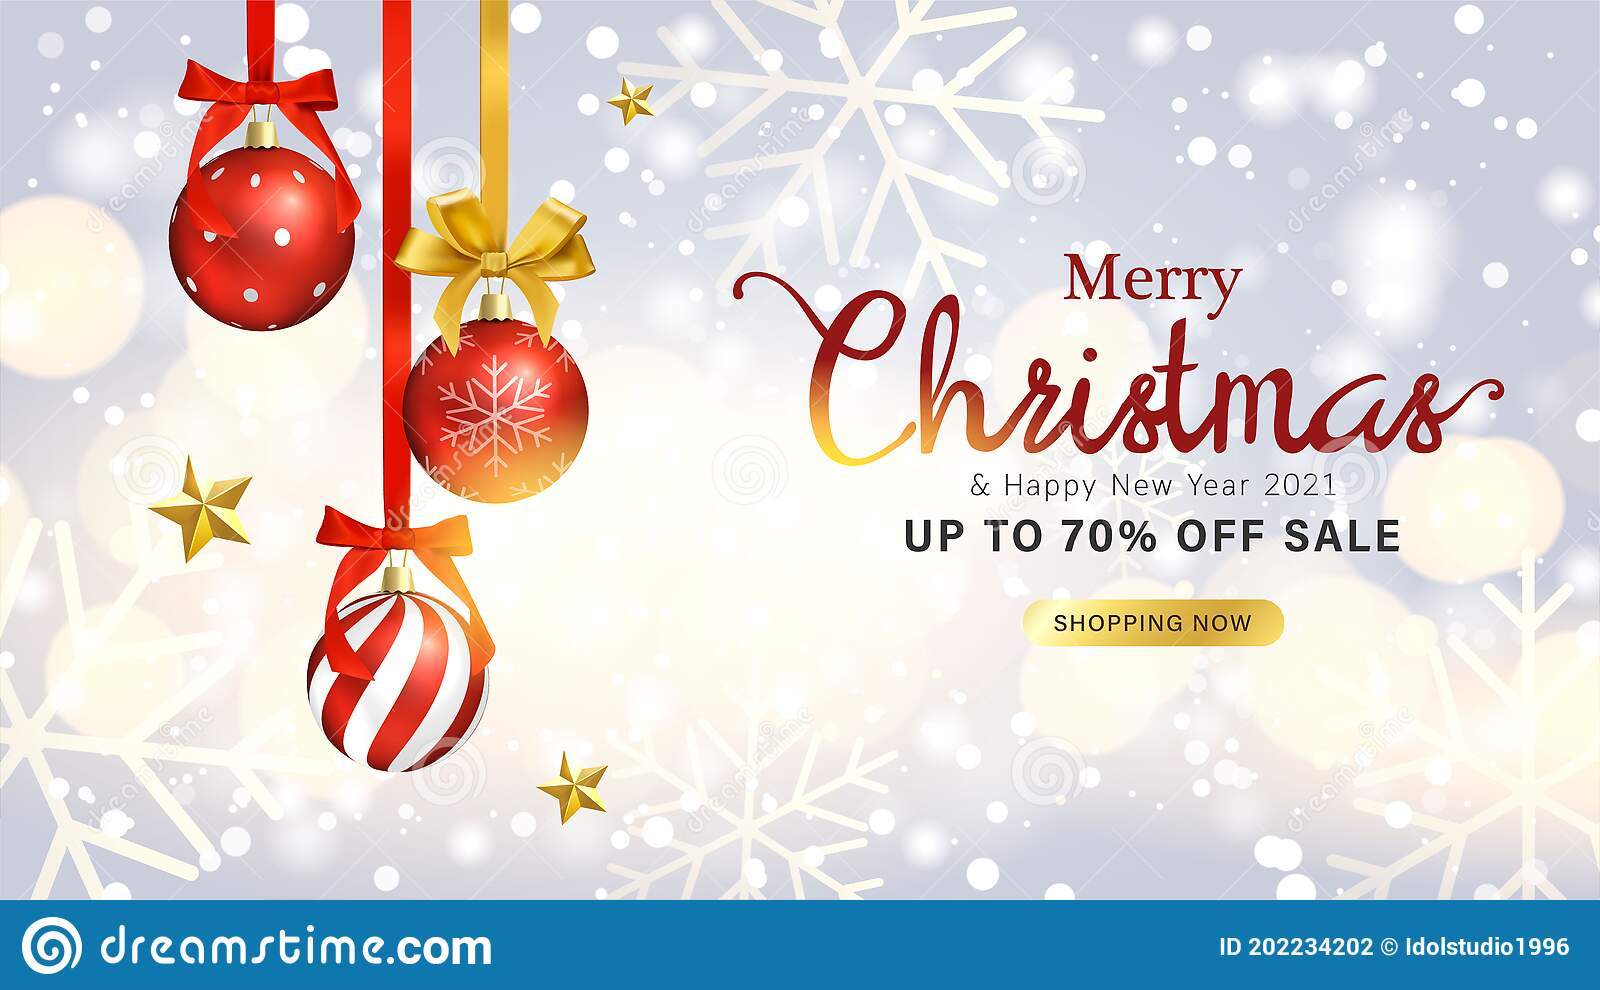 Merry Christmas & Happy New Year 2021 Banner Images Modern Merry Christmas And New Year 2021 Stock Vector Illustration Of Blue Label 202234202